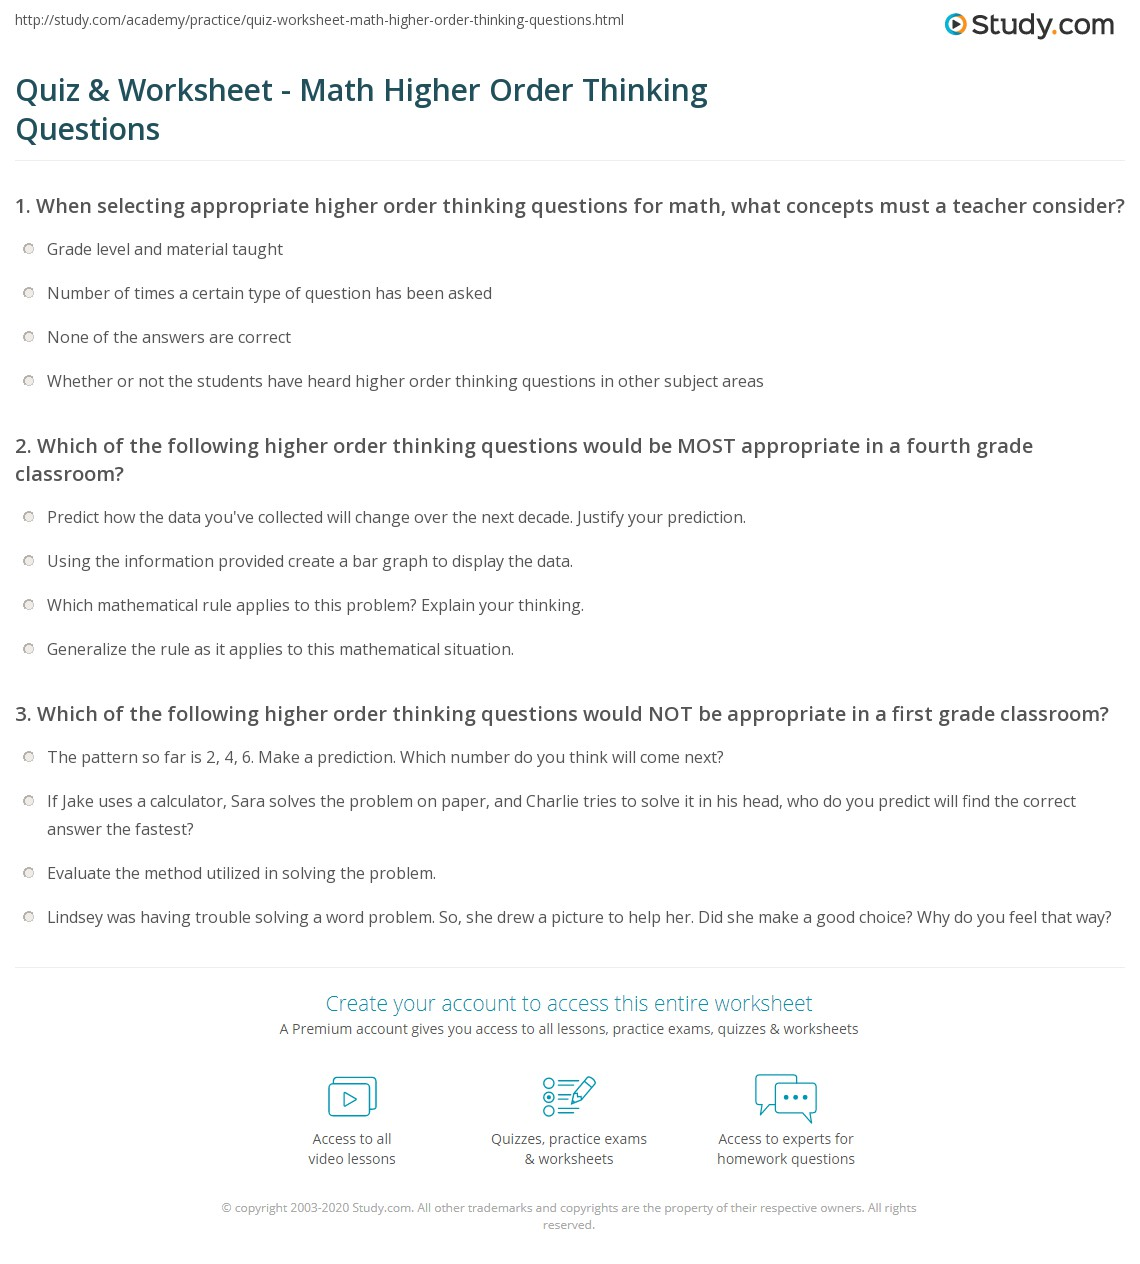 math worksheet : quiz  worksheet  math higher order thinking questions  study  : Math Quiz Worksheet